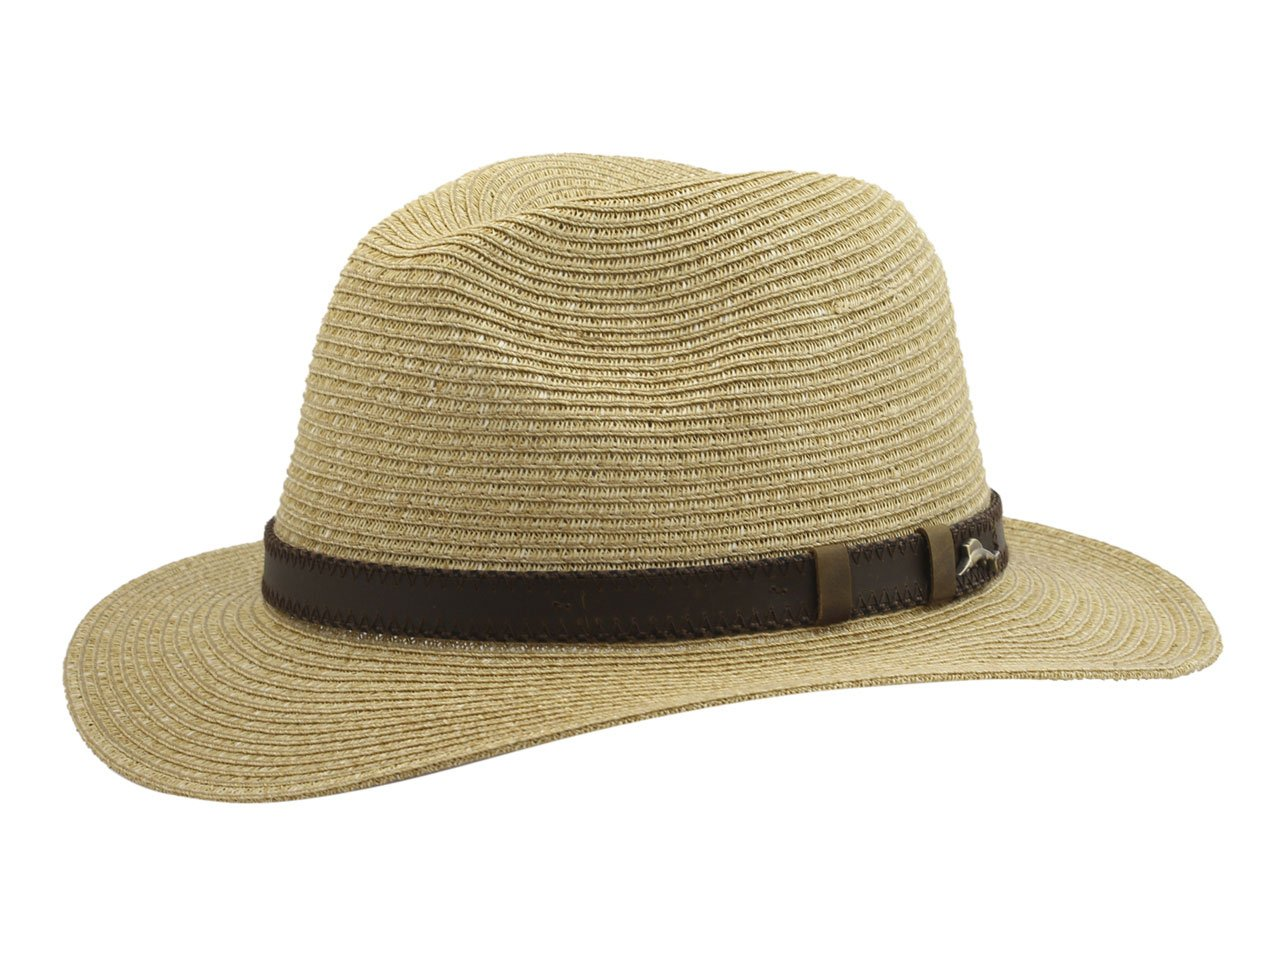 Tommy Bahama Men's Fine Braid Safari Hat, Tea, Large/Extra Large